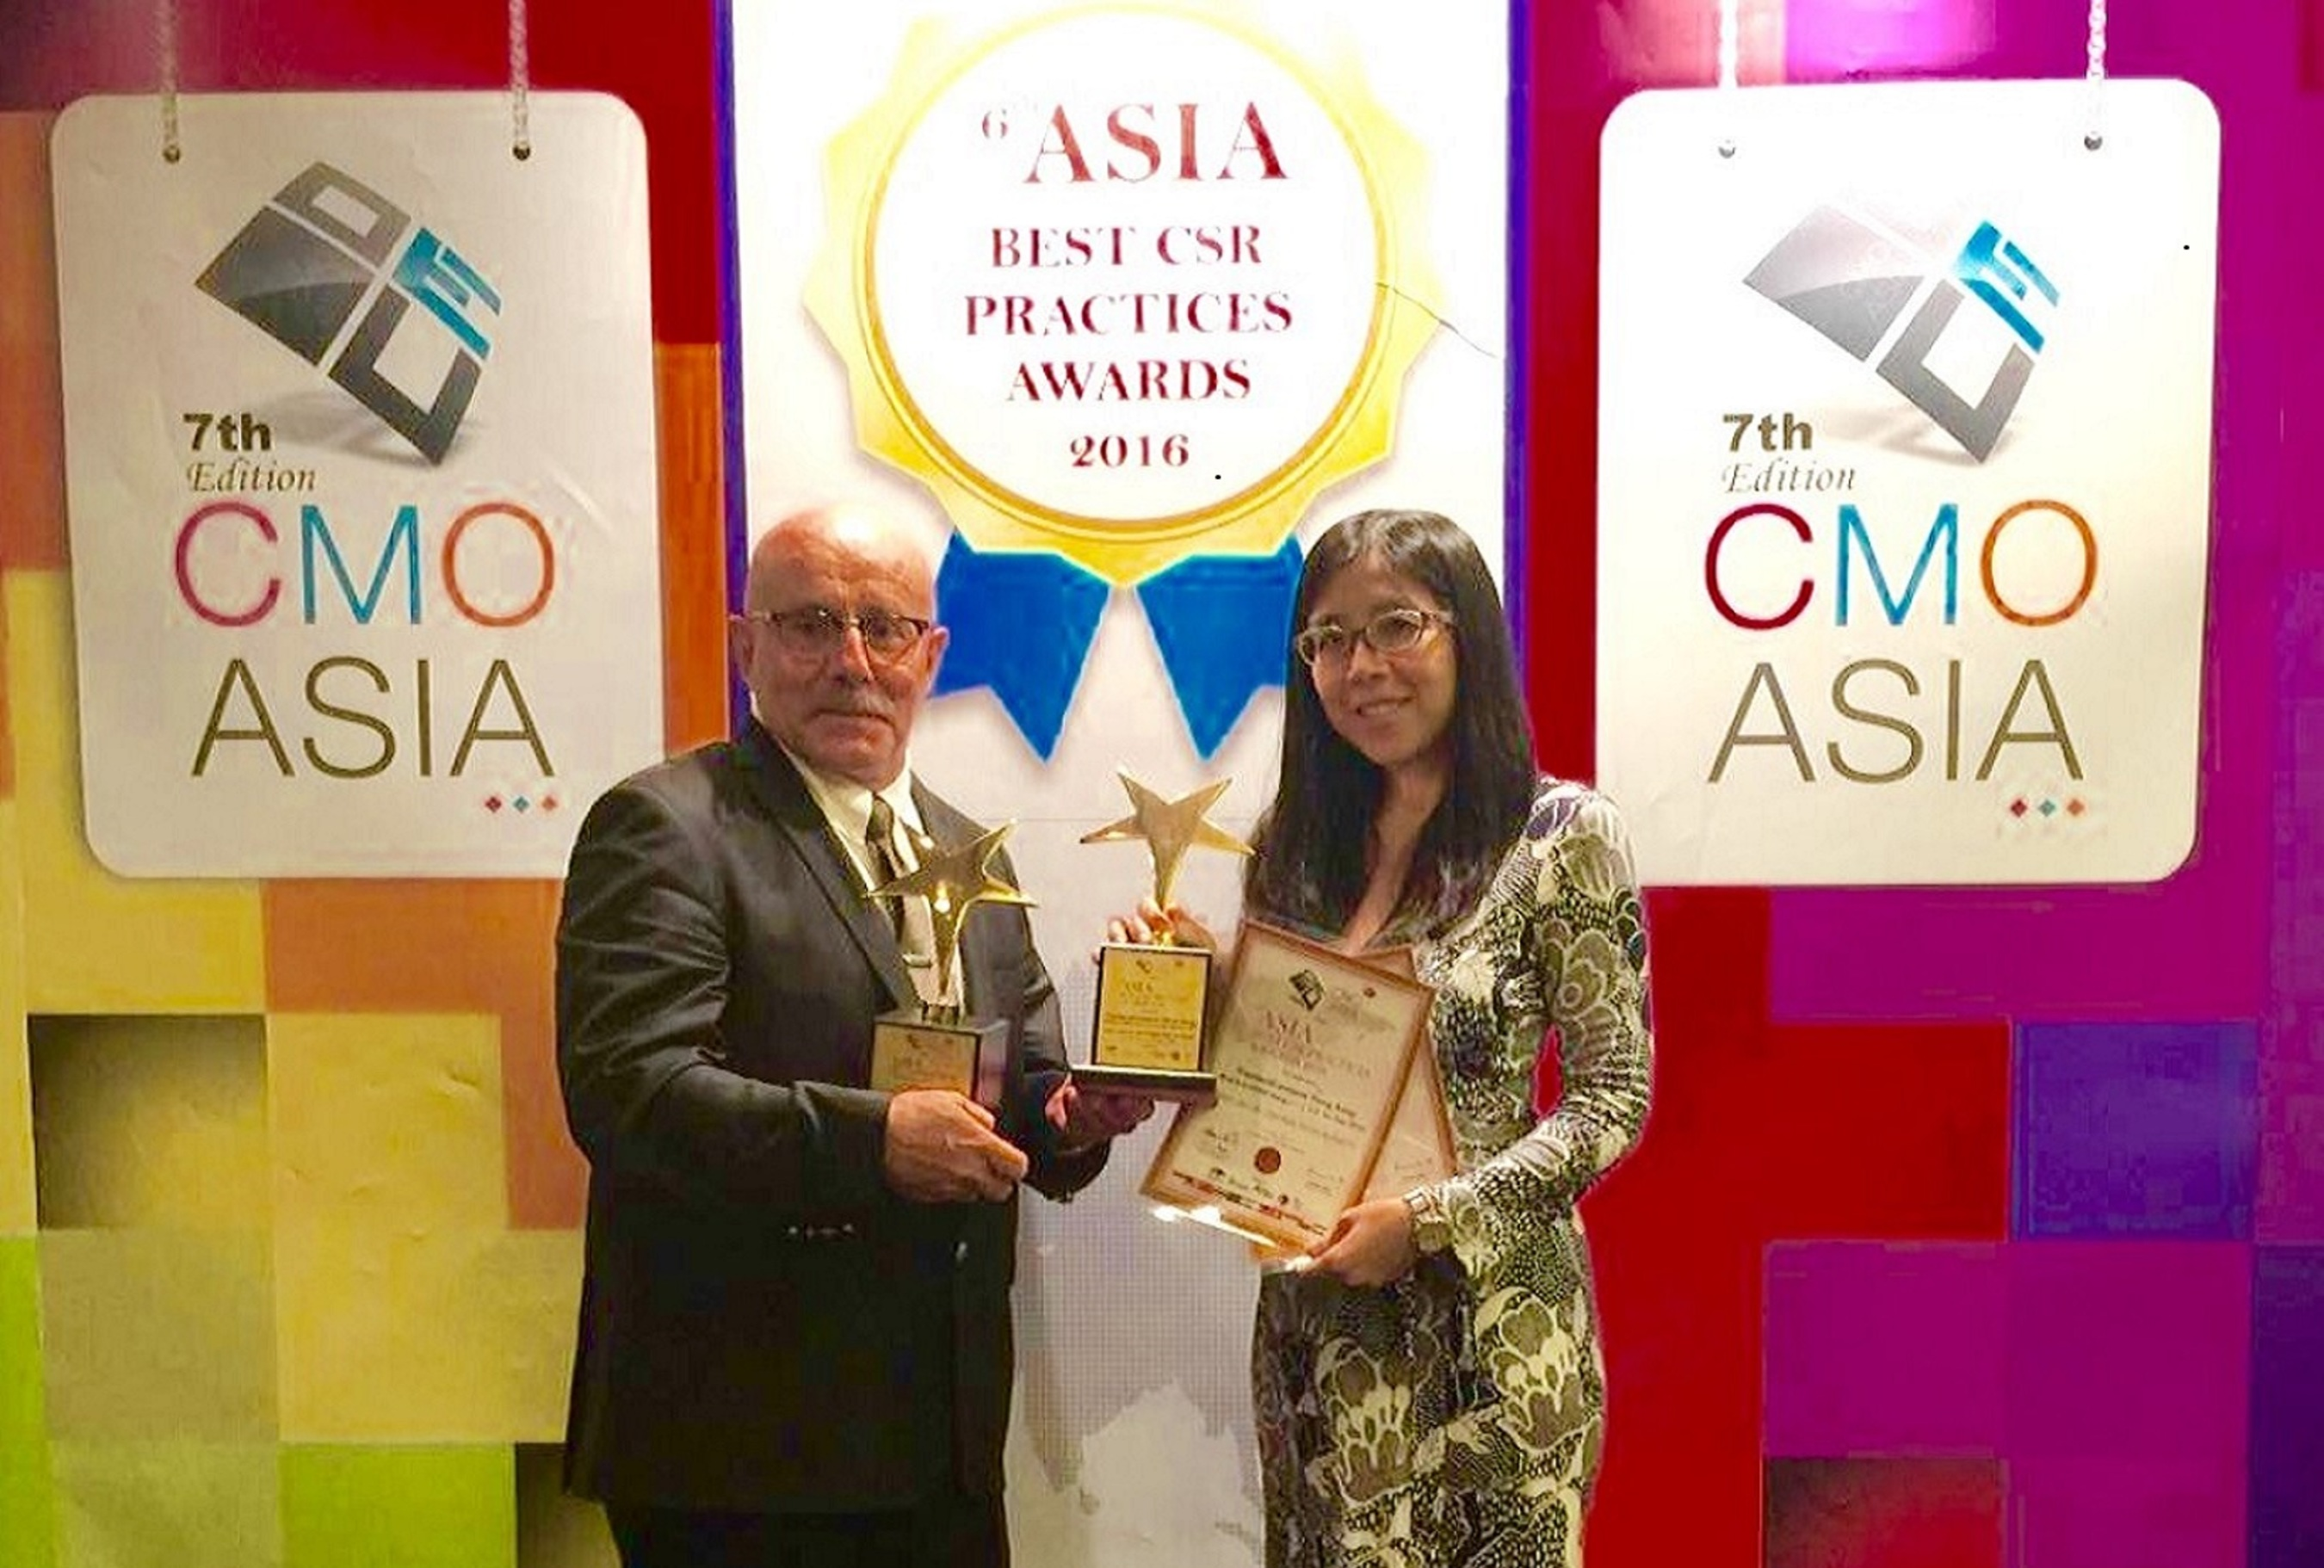 FrieslandCampina Asia wins the 'Best Use of Corporate Social Responsibility Practices' award at CMO Asia's 6th Best CSR Practices Awards Ceremony. This is the second consecutive win by the company